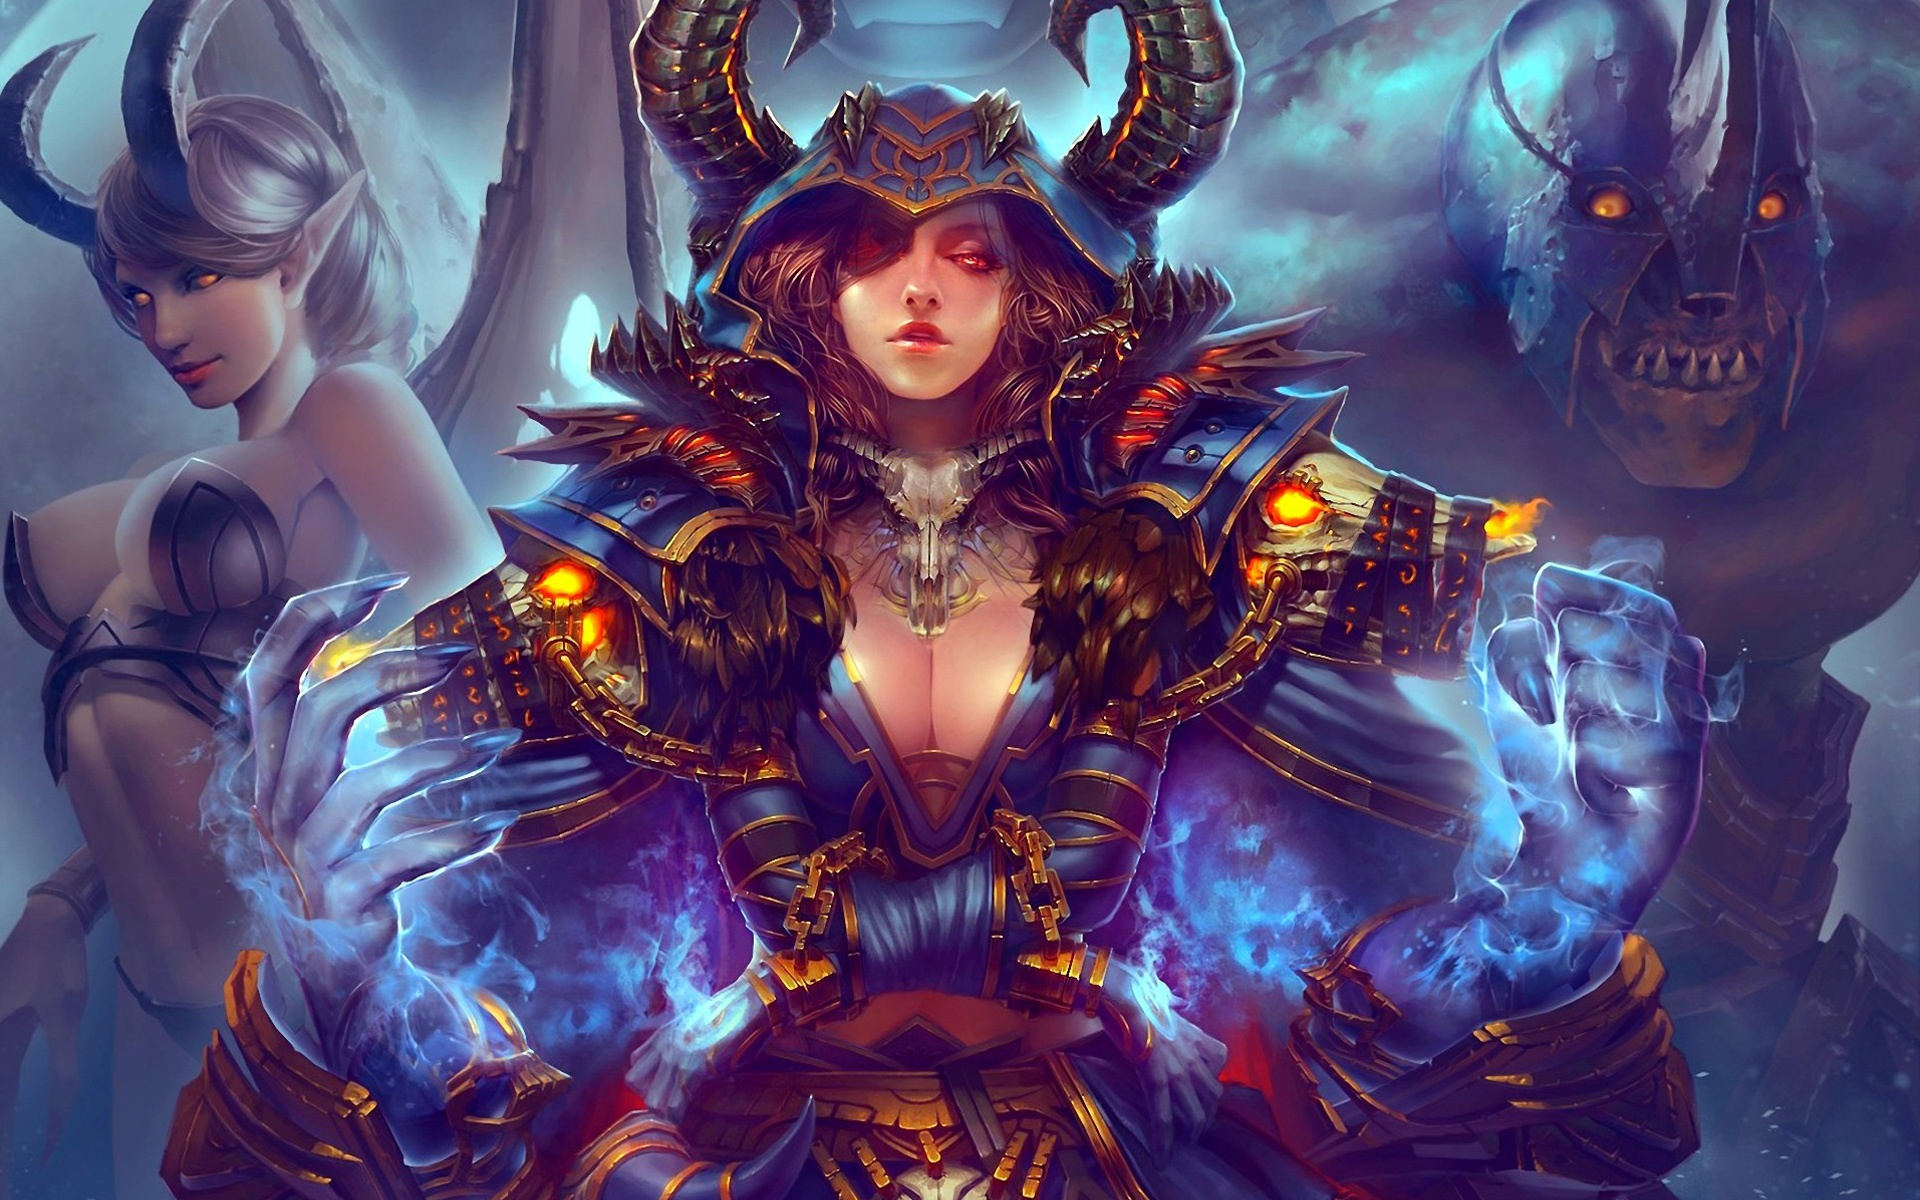 Fondos De Pantalla World Of Warcraft Pintura Del Arte